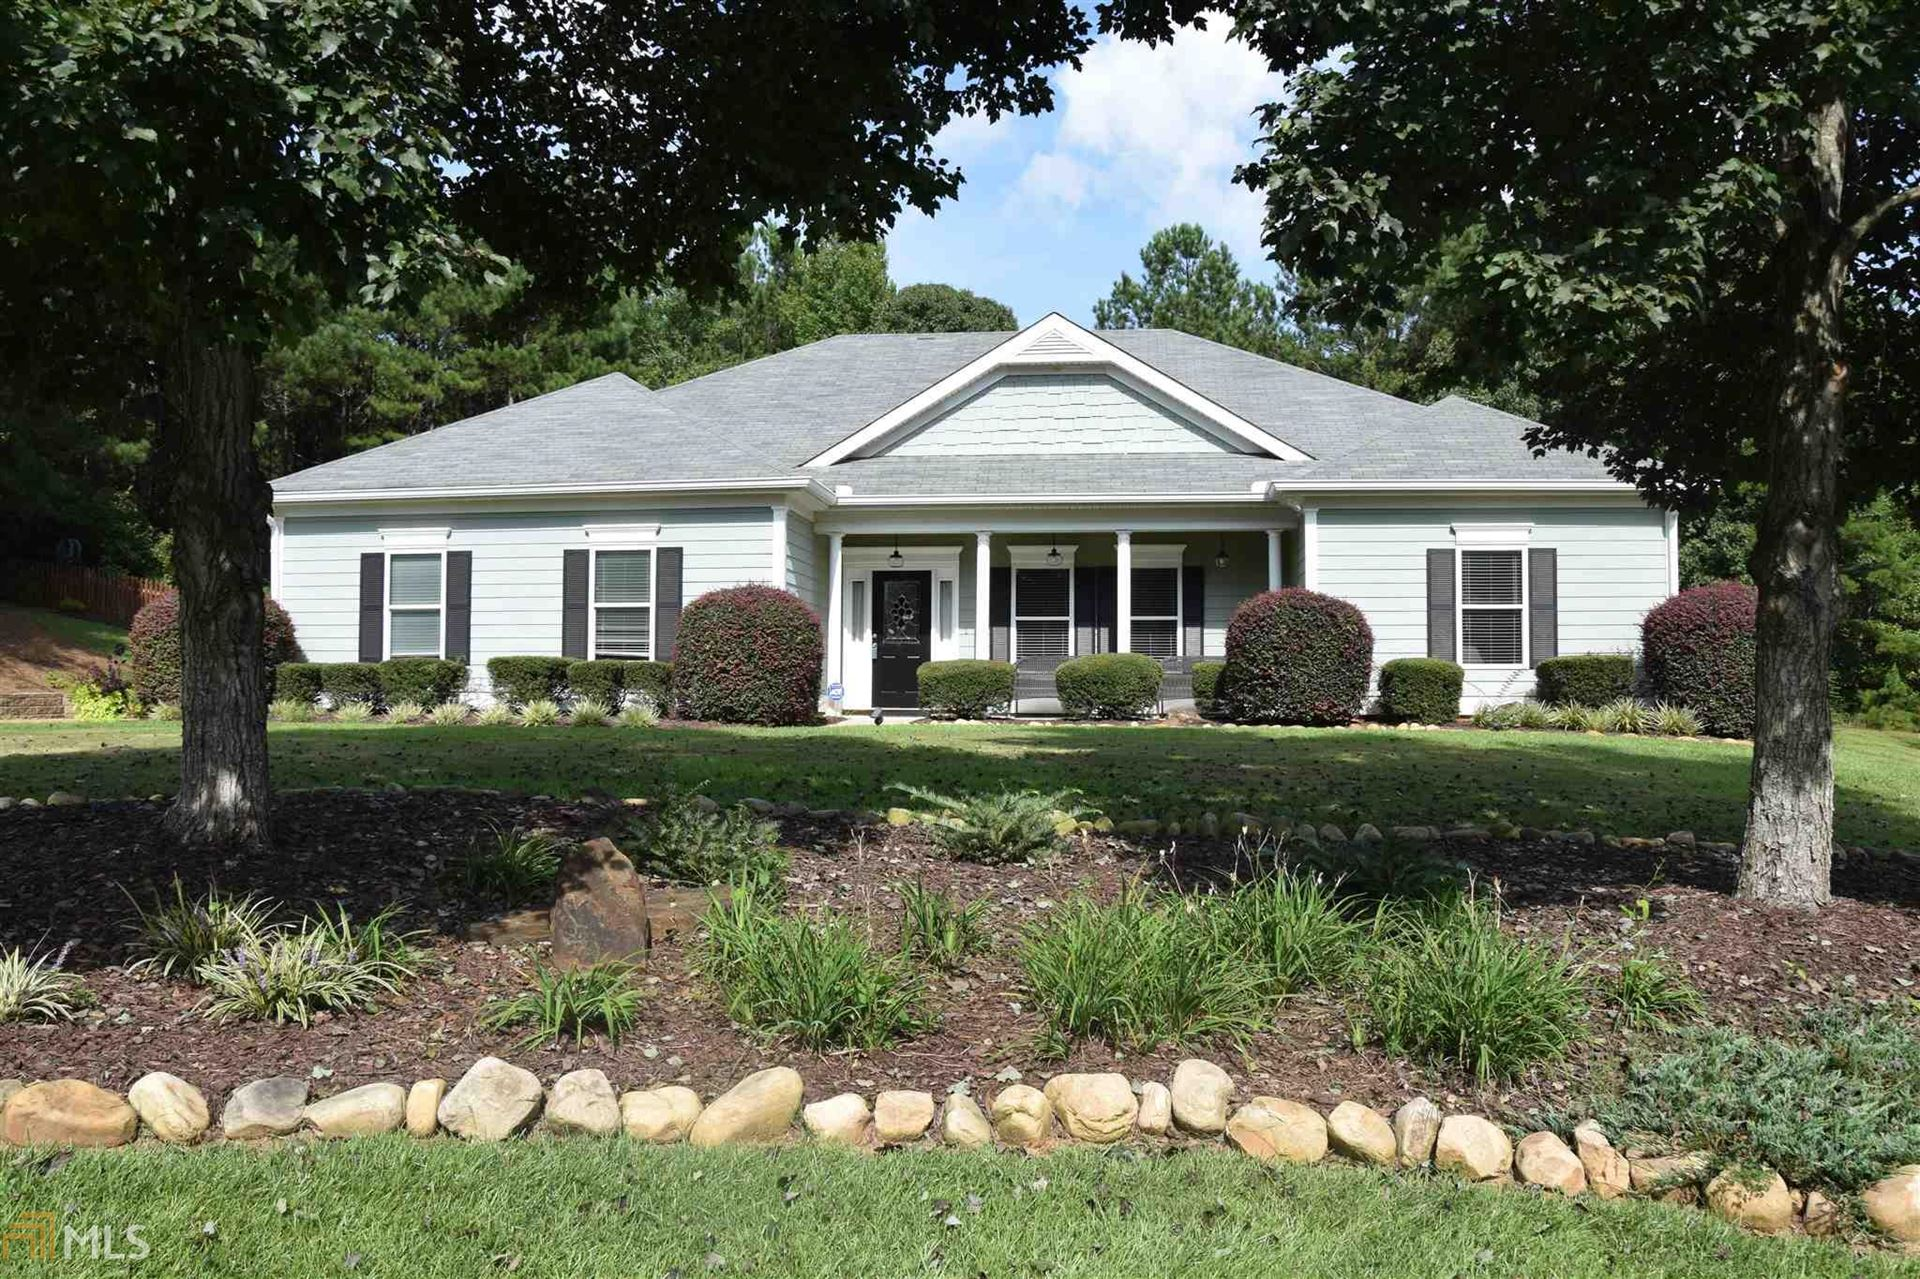 80 Carriage Ln, Senoia, GA 30276 - MLS#: 8850712